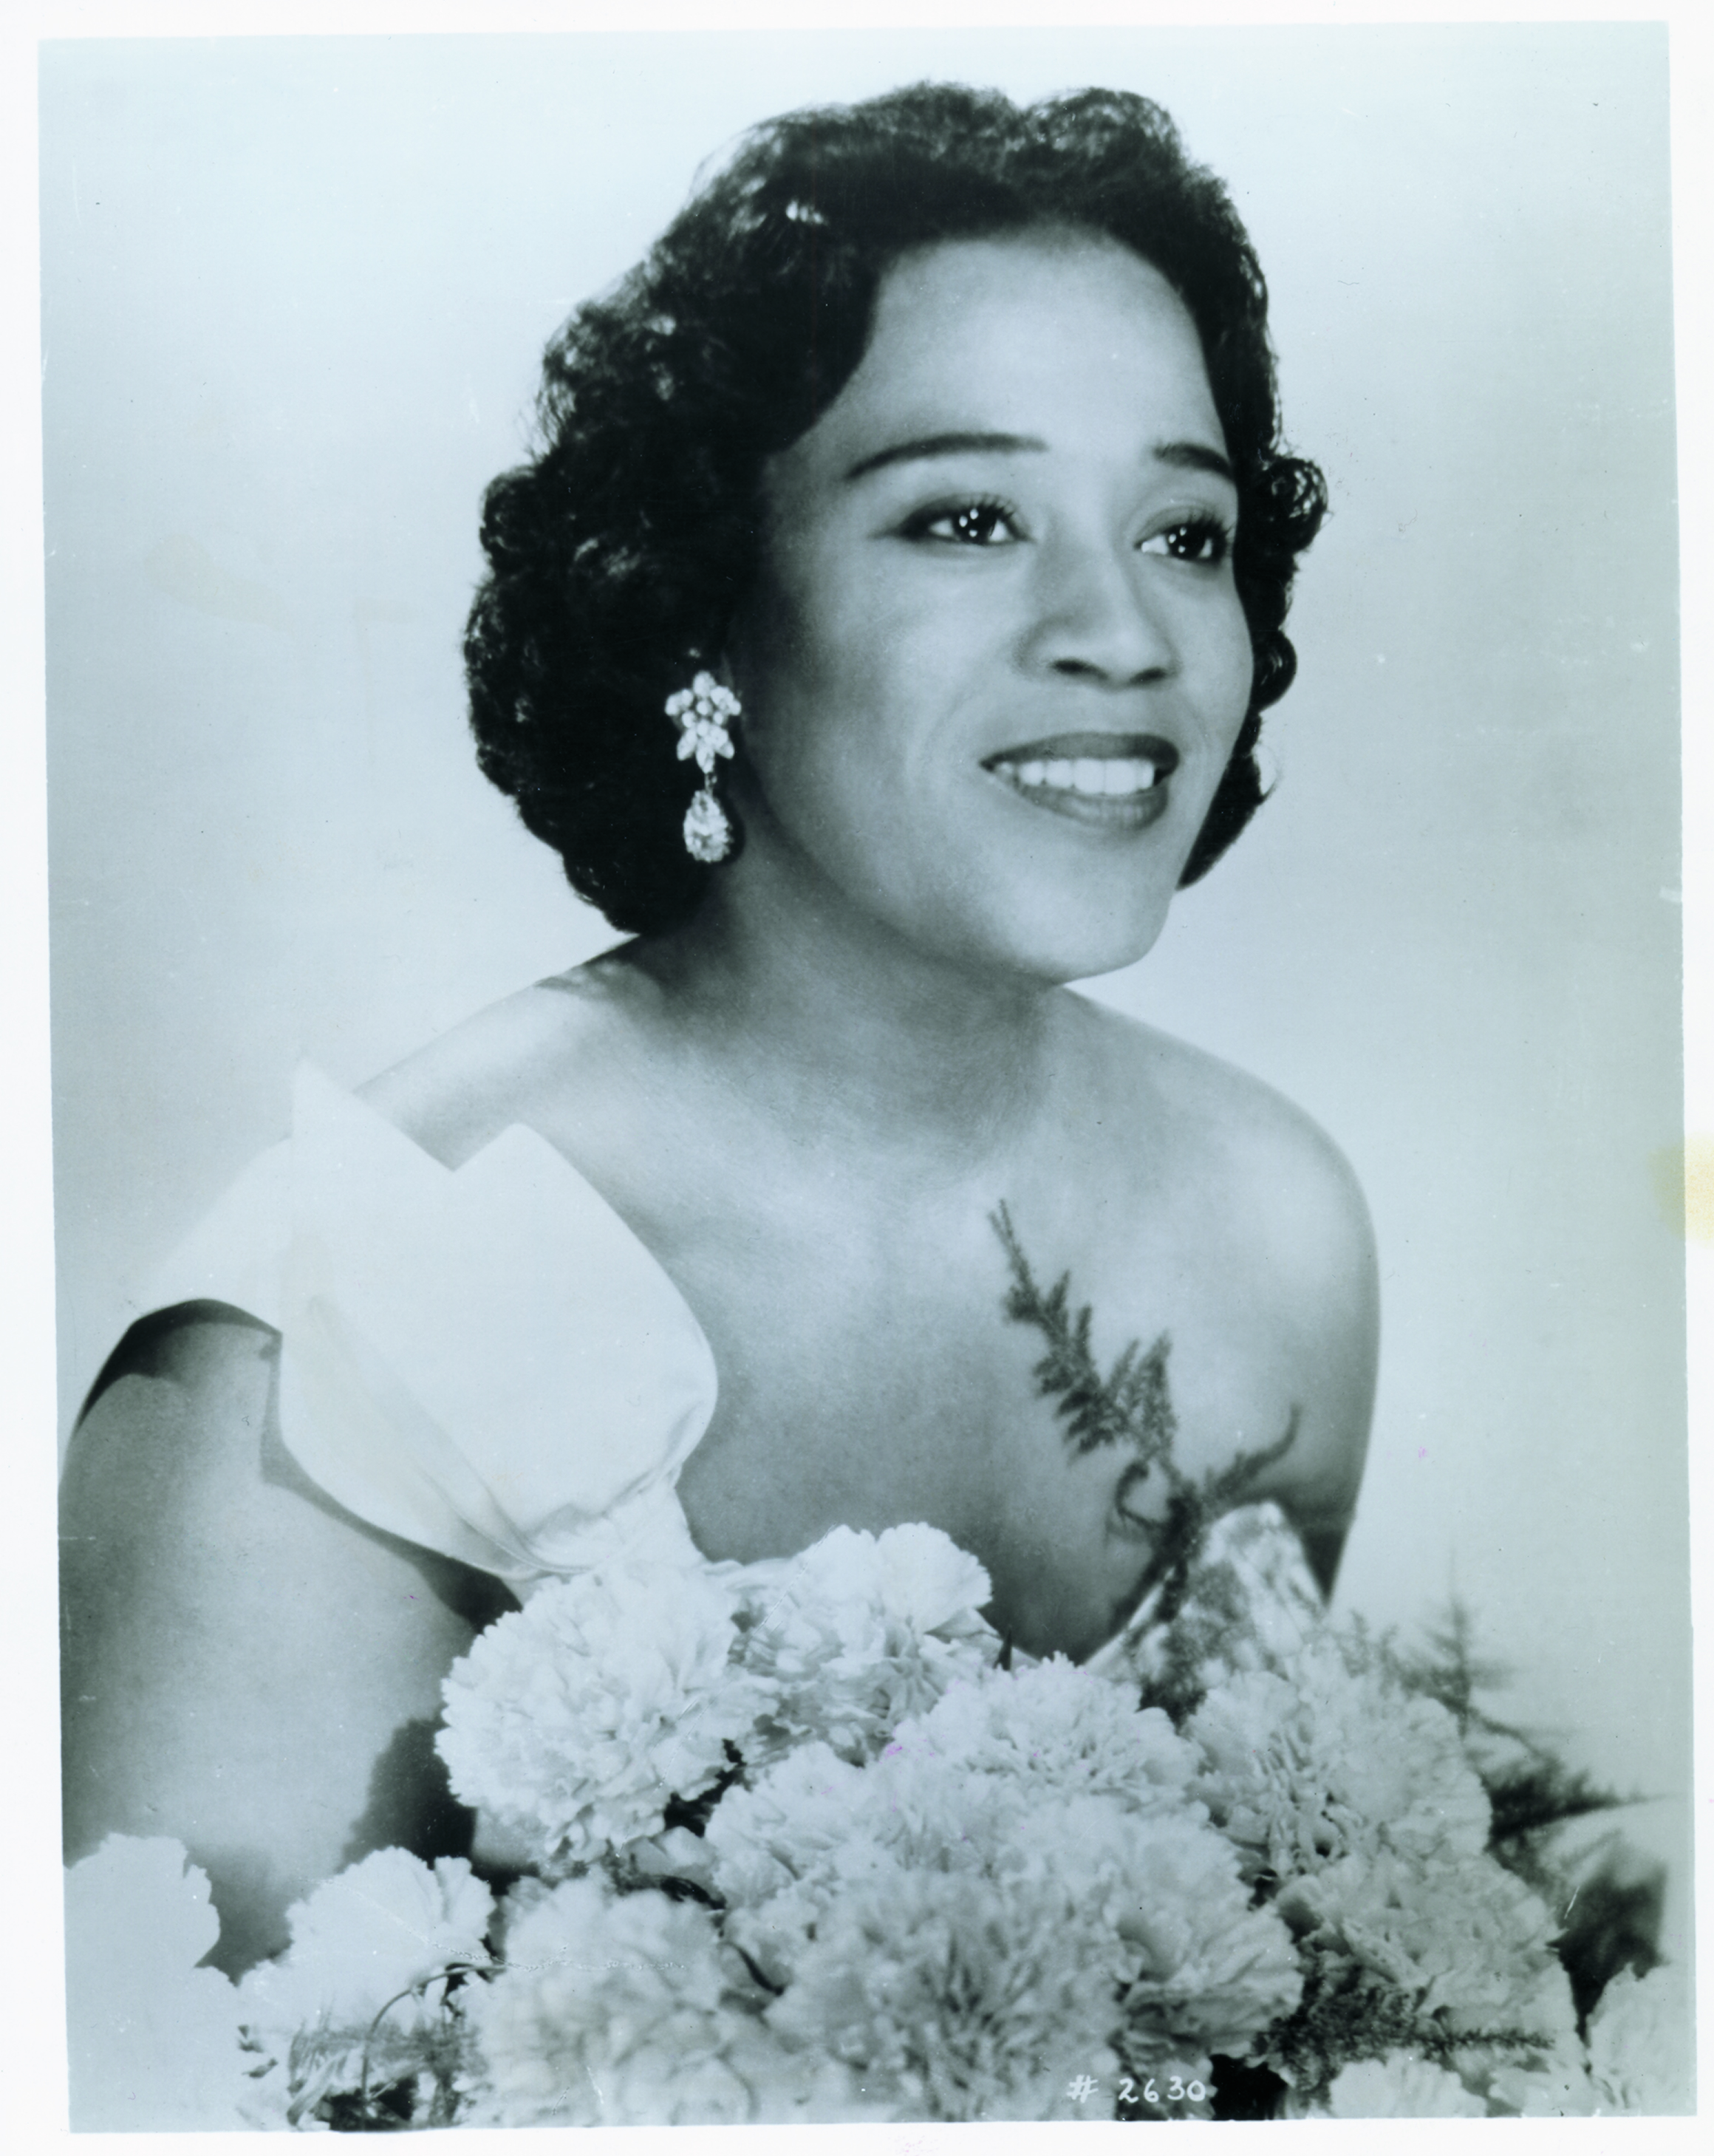 Photograph of Camilla Williams, courtesy of the Virginia Historical Society.